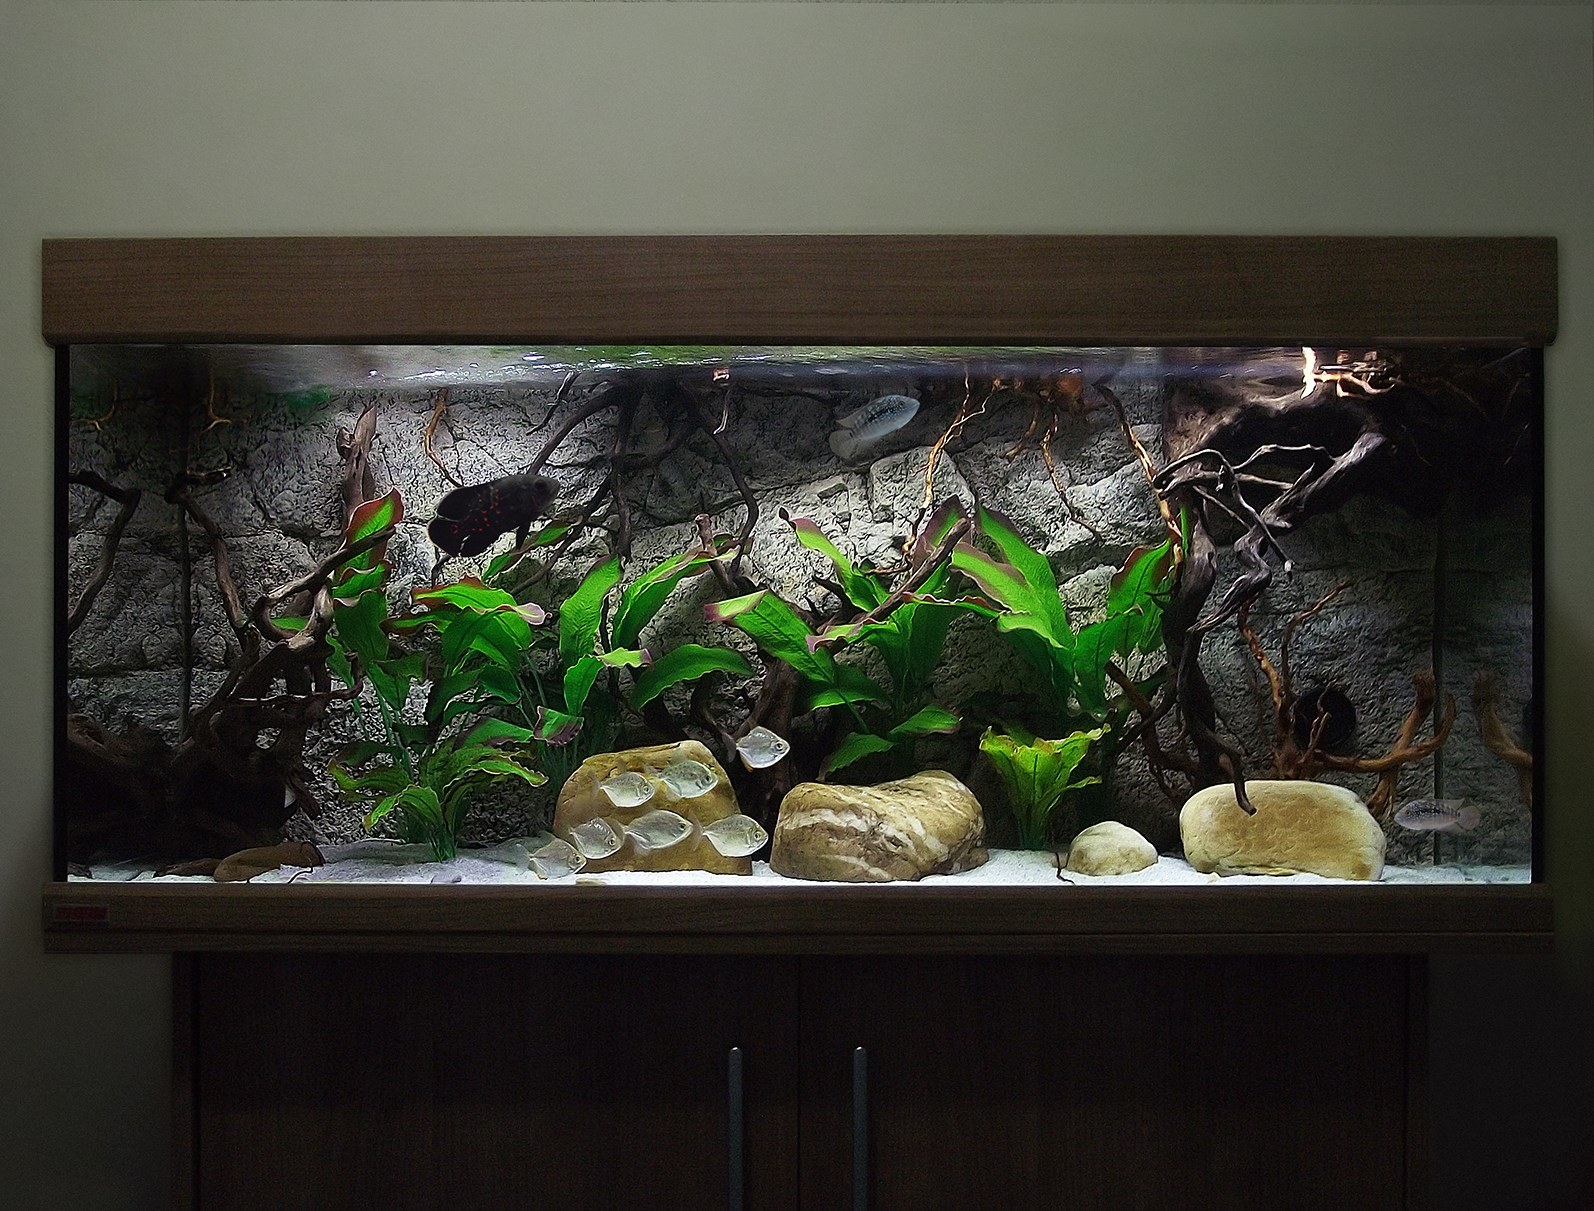 Sumatra 120x50 cm arstone aquarium backgrounds for Aquarium wood decoration